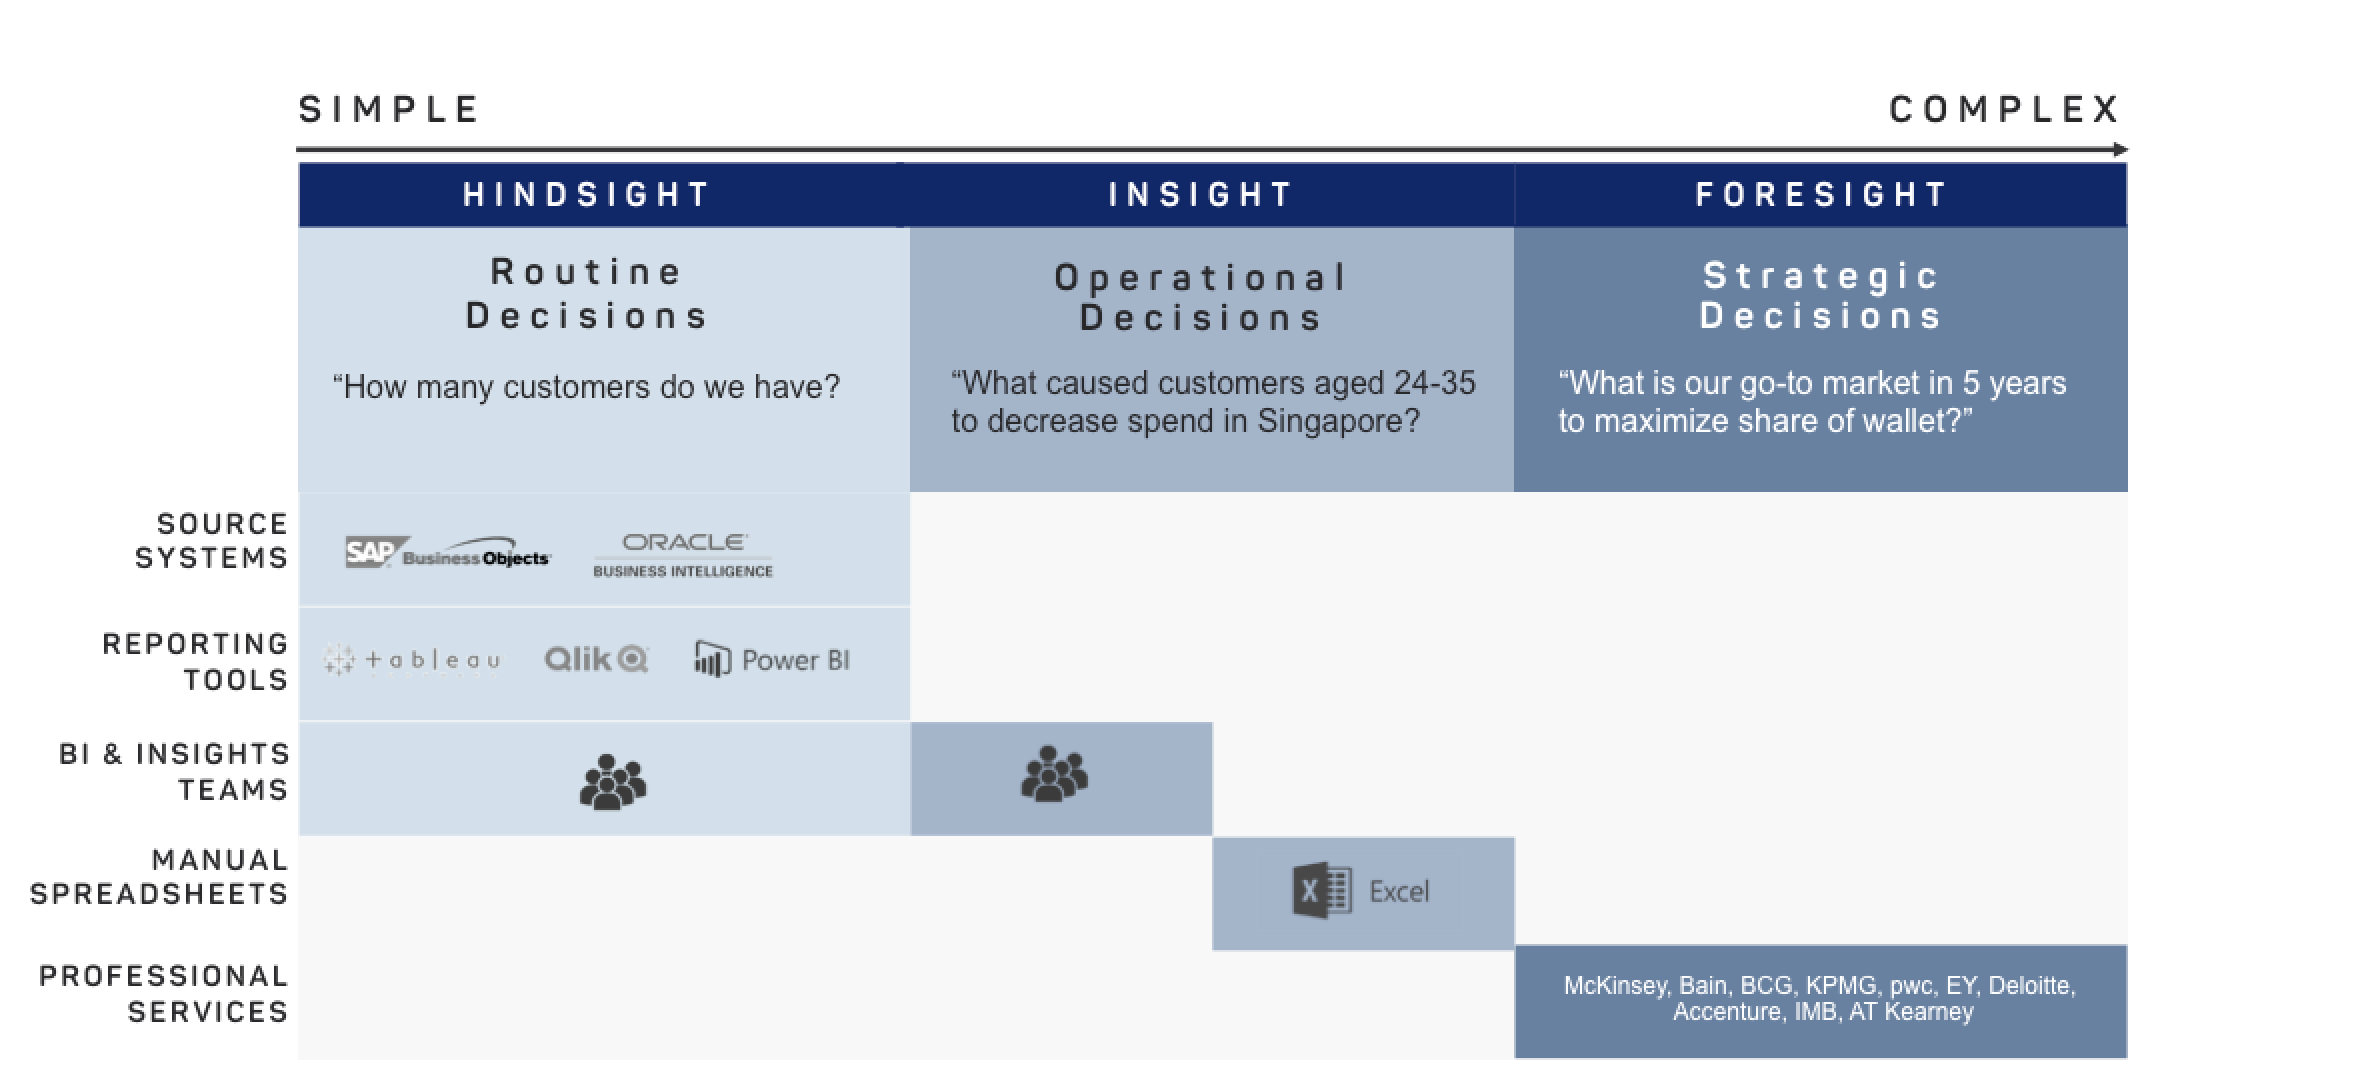 3 types of information or insights in enterprise: hindsight, insight and foresight